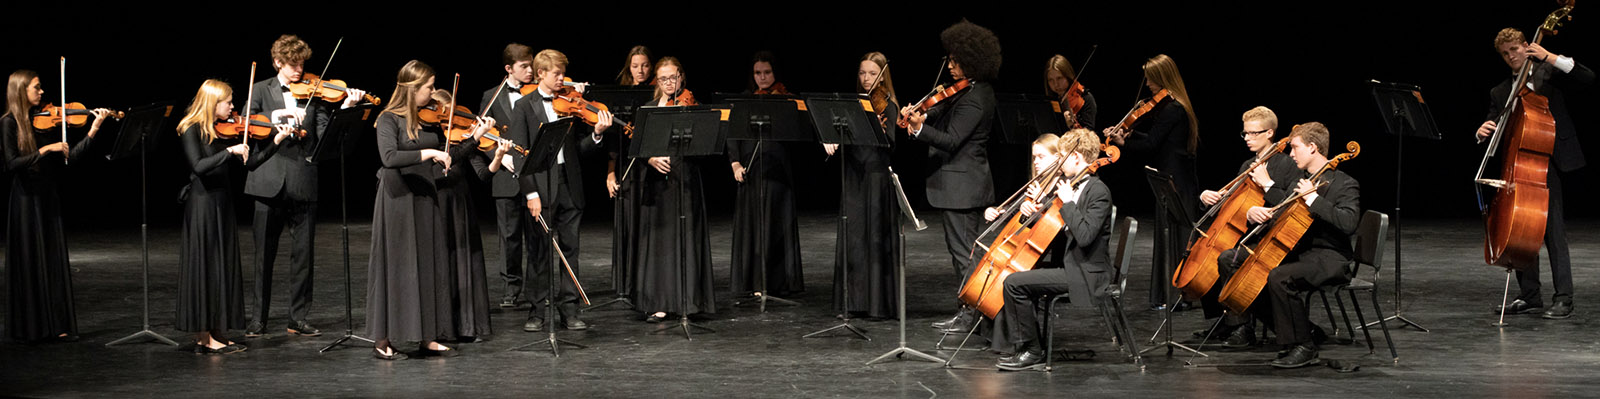 Chamber Orchestra